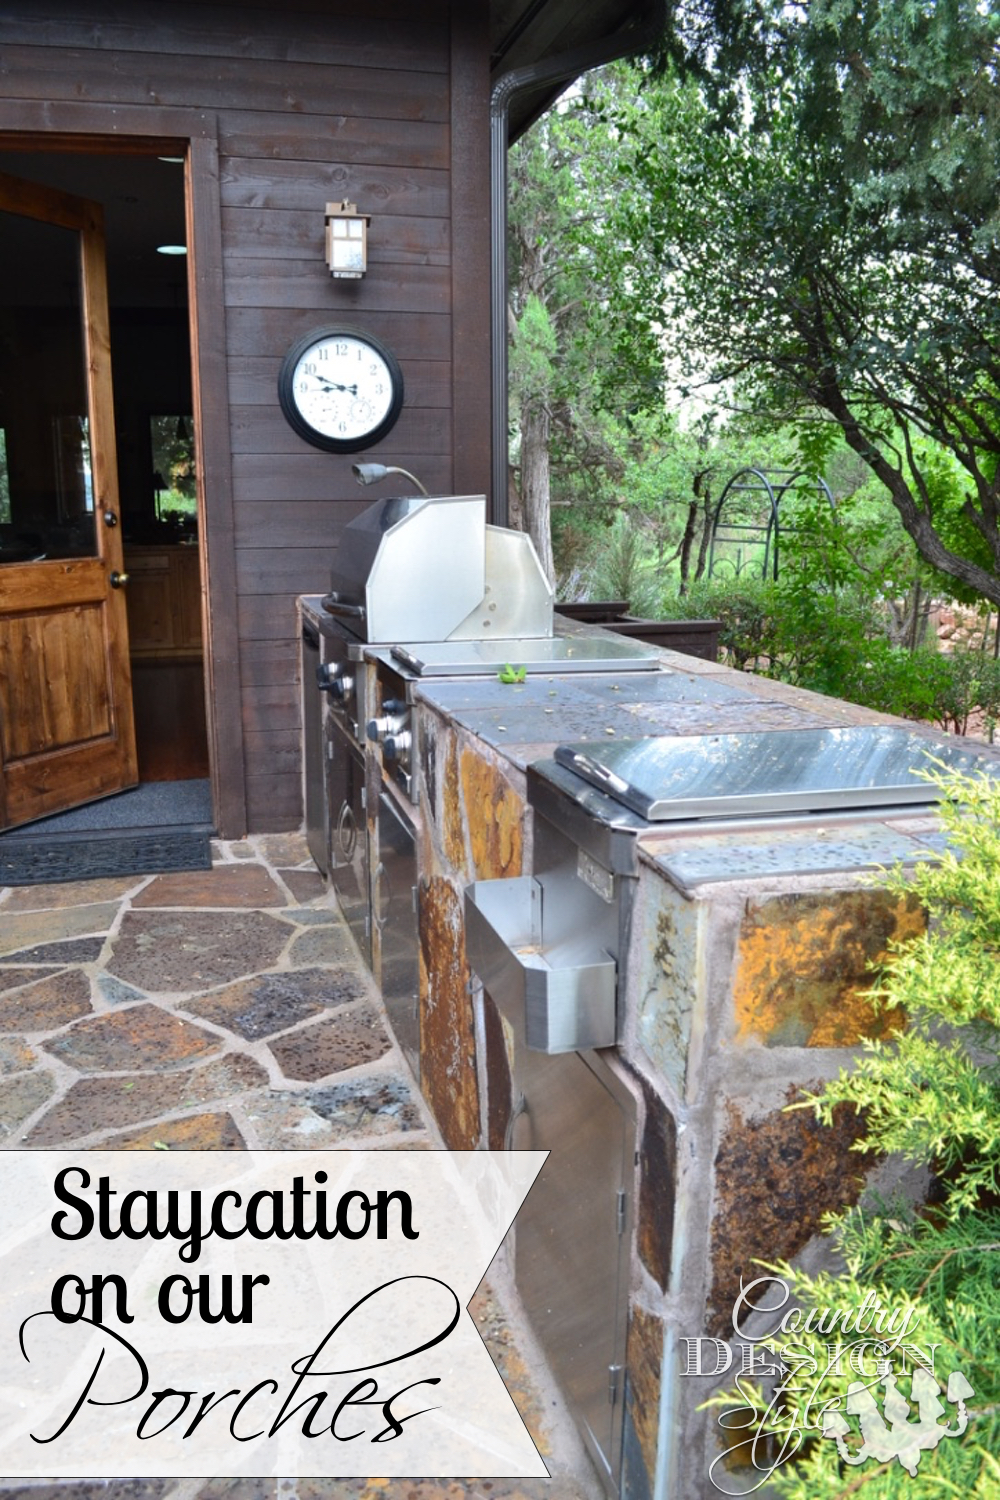 We live in a cabin so staycations happen here all the time. Camping type meals, easy clean up, and the comfort of our own beds is the best way to staycation. Country Design Style